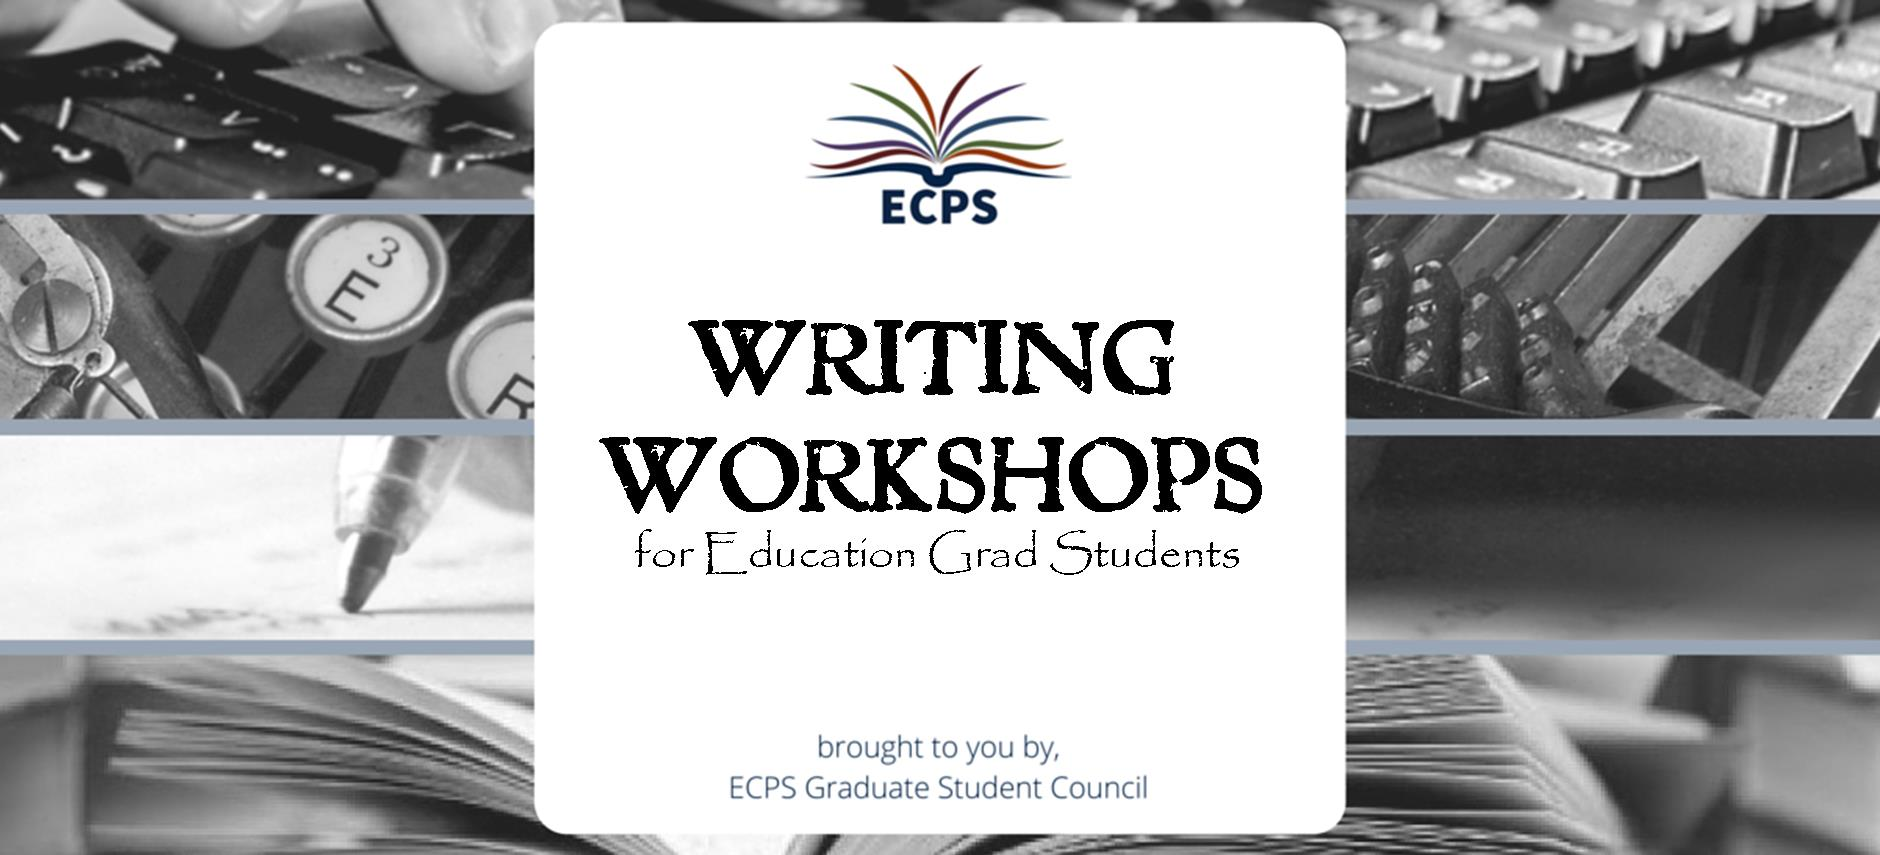 Grant writing services workshops vancouver